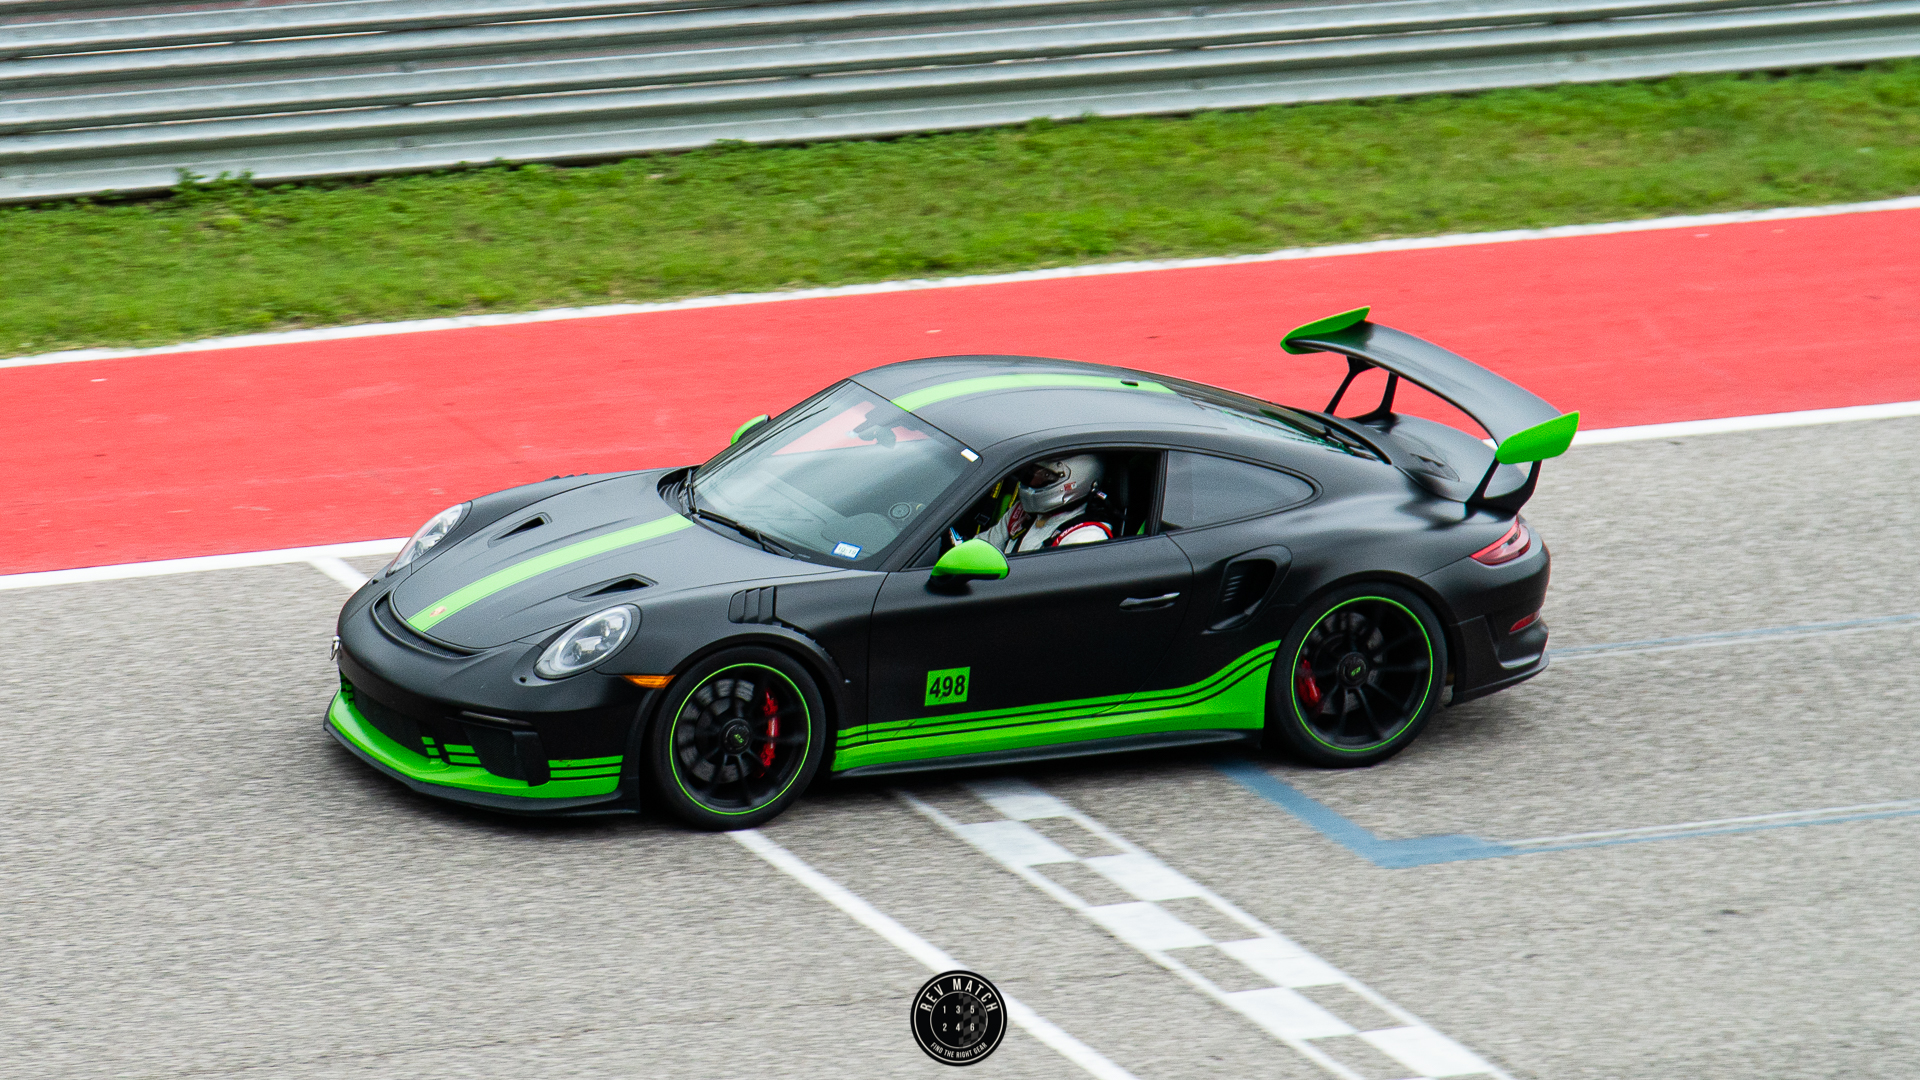 Edge Addict COTA May 2019 Rev Match Media-7.jpg